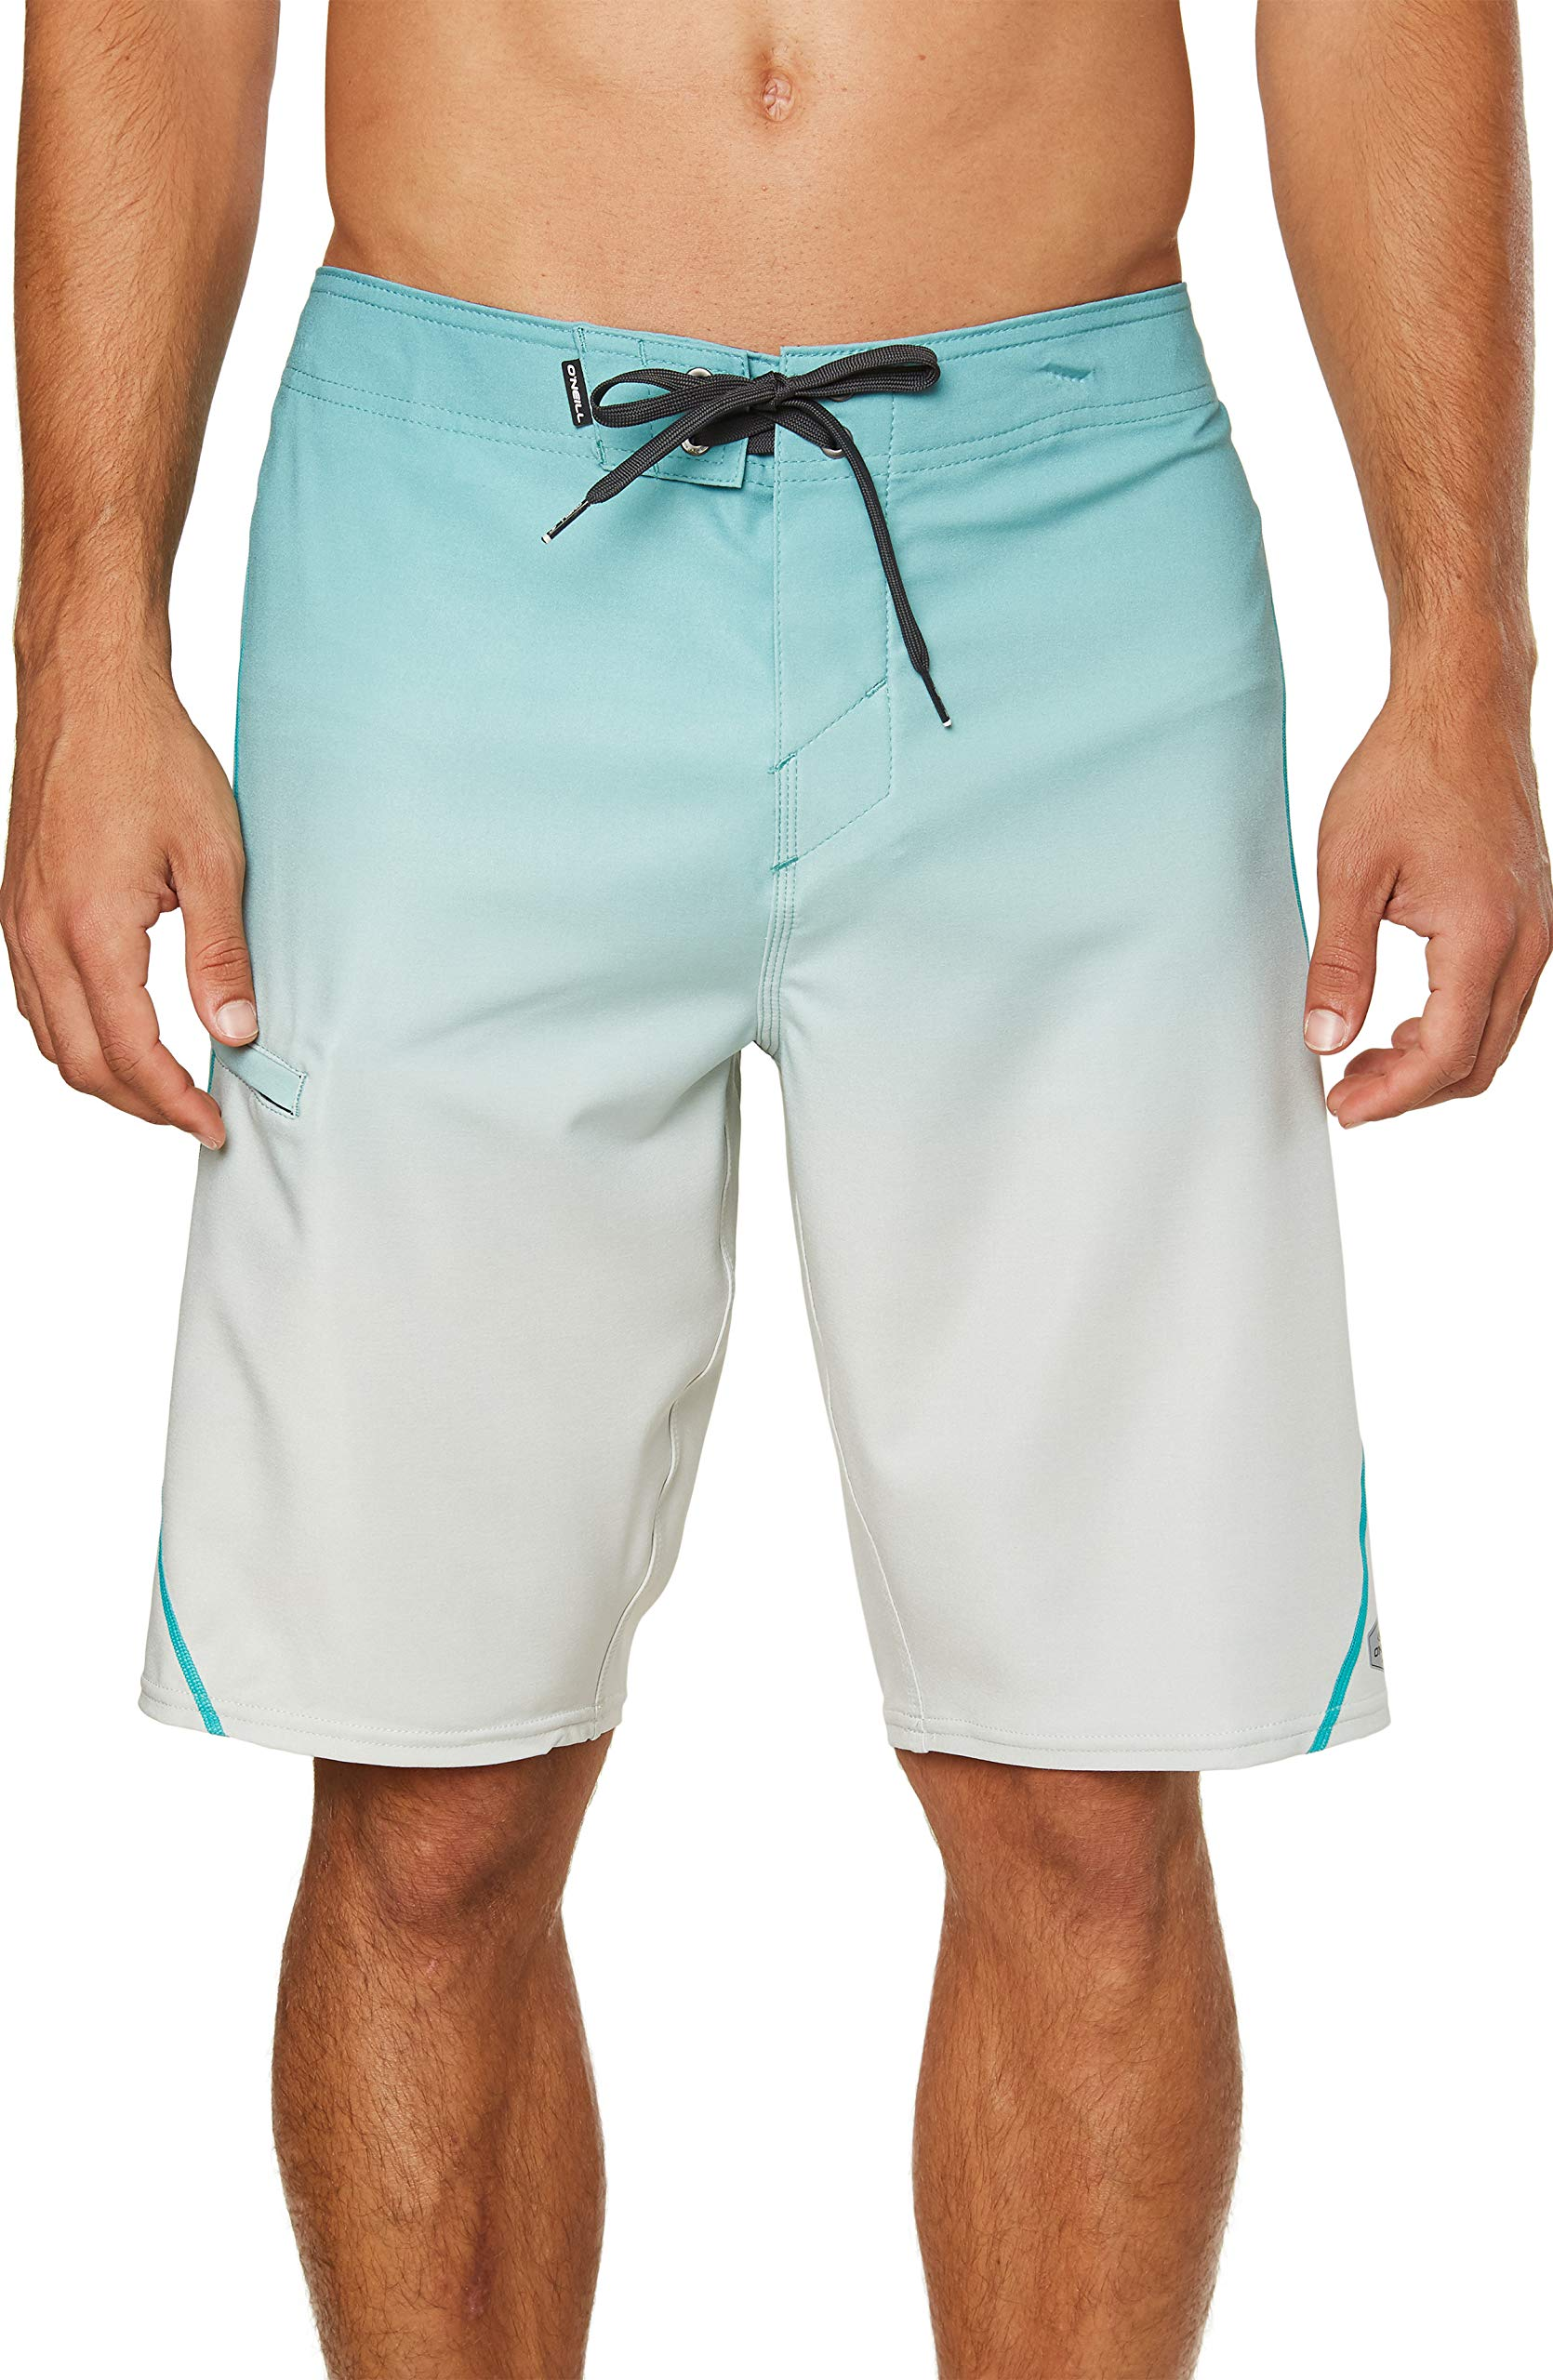 O'NEILL Men's Water Resistant Hyperfreak Stretch S-Seam Swim Boardshorts, 21 Inch Outseam (Teal / HO19, 36) by O'NEILL